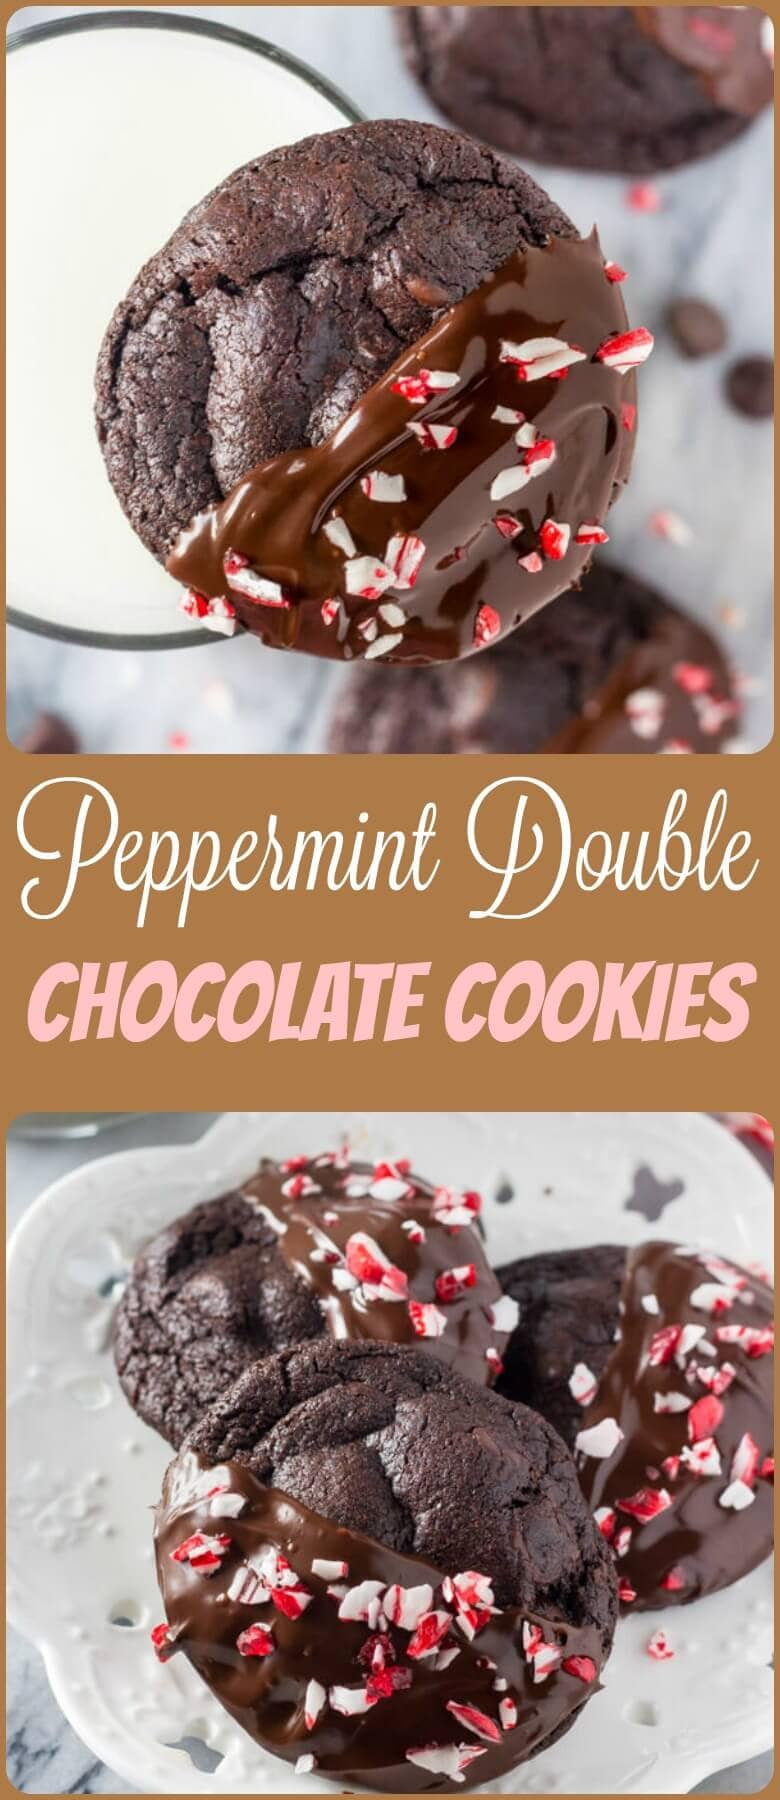 Peppermint Double Chocolate Cookies have a rich chocolate taste and are infused with peppermint. They're dipped in chocolate and sprinkled with crushed candy canes for the perfect holiday cookie! ohsweetbasil.com